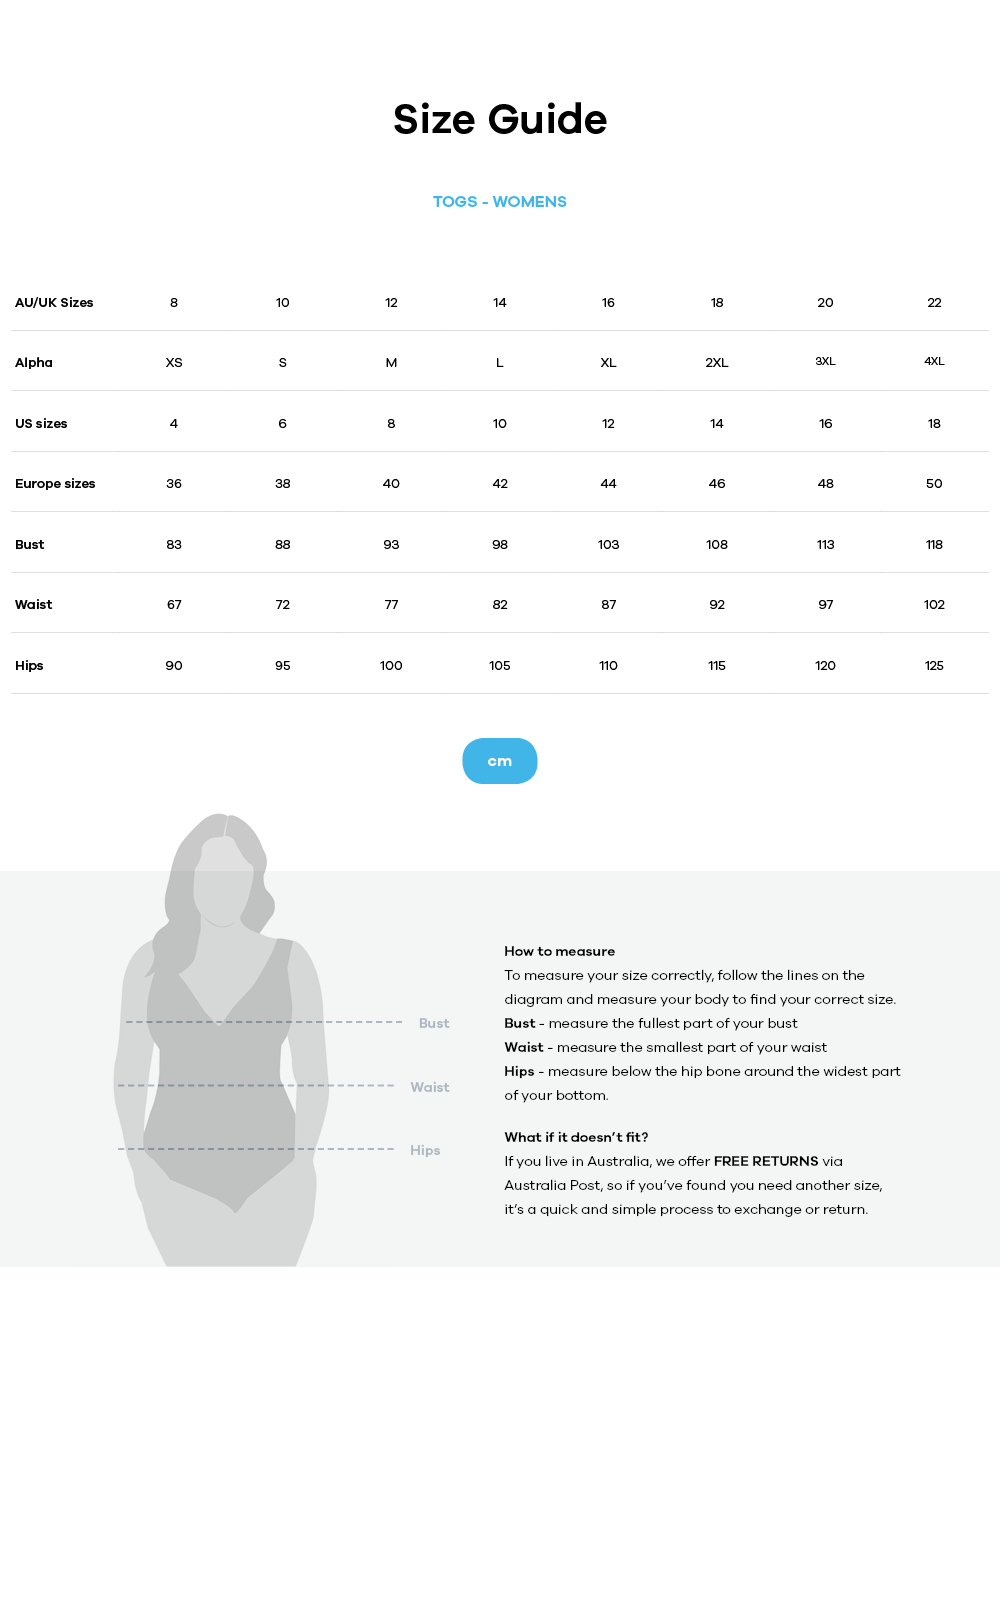 Togs Swimwear size guide